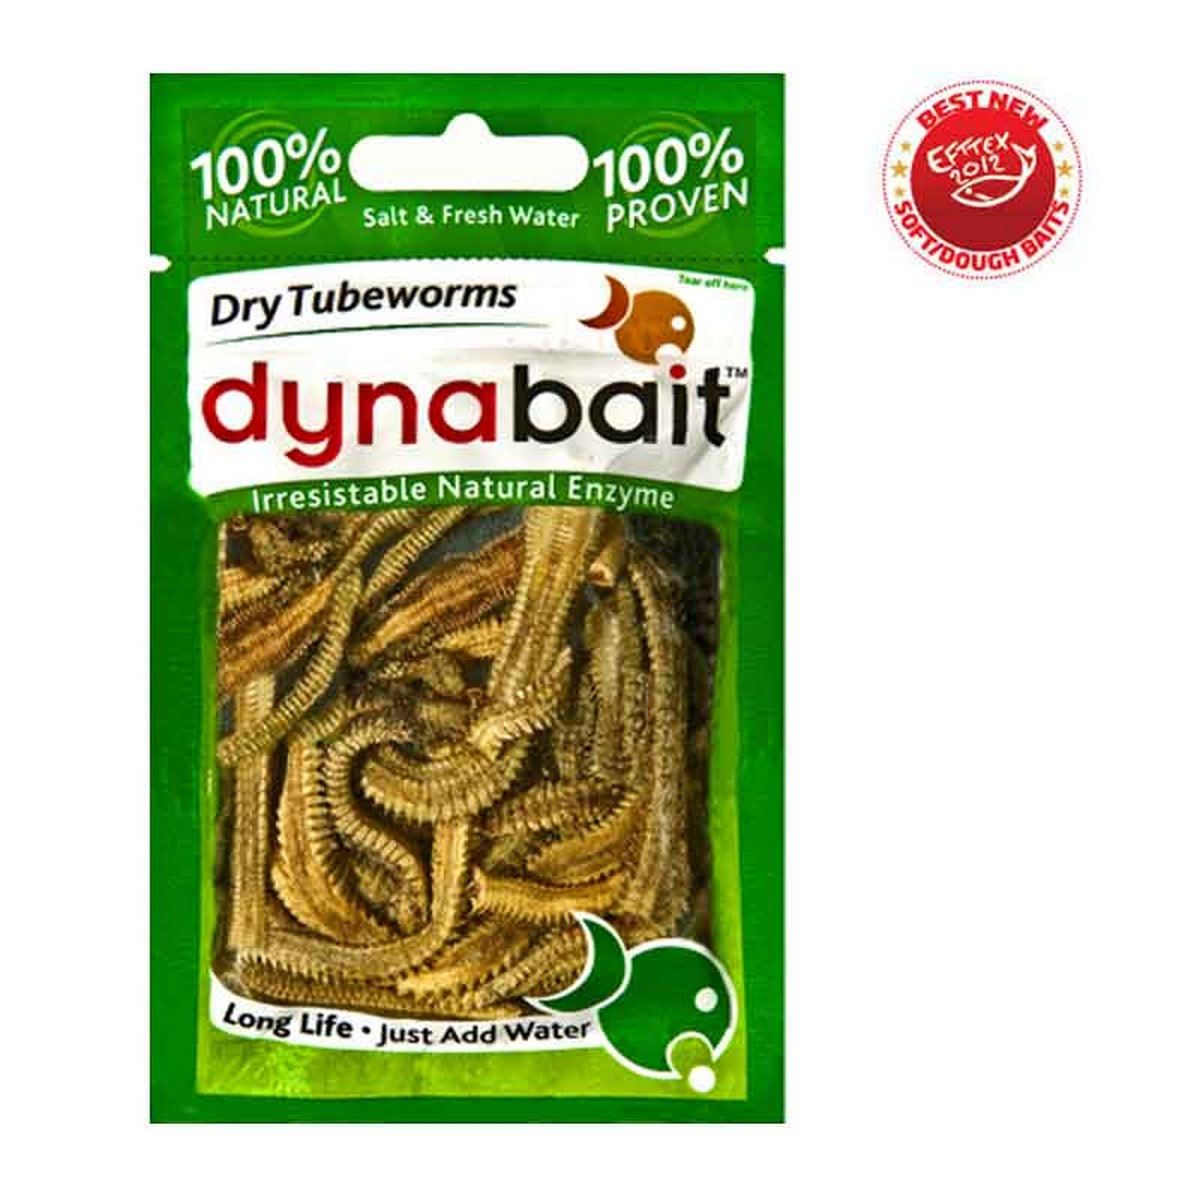 Dynabait Freeze Dried Tube Worms - изсушени червеи